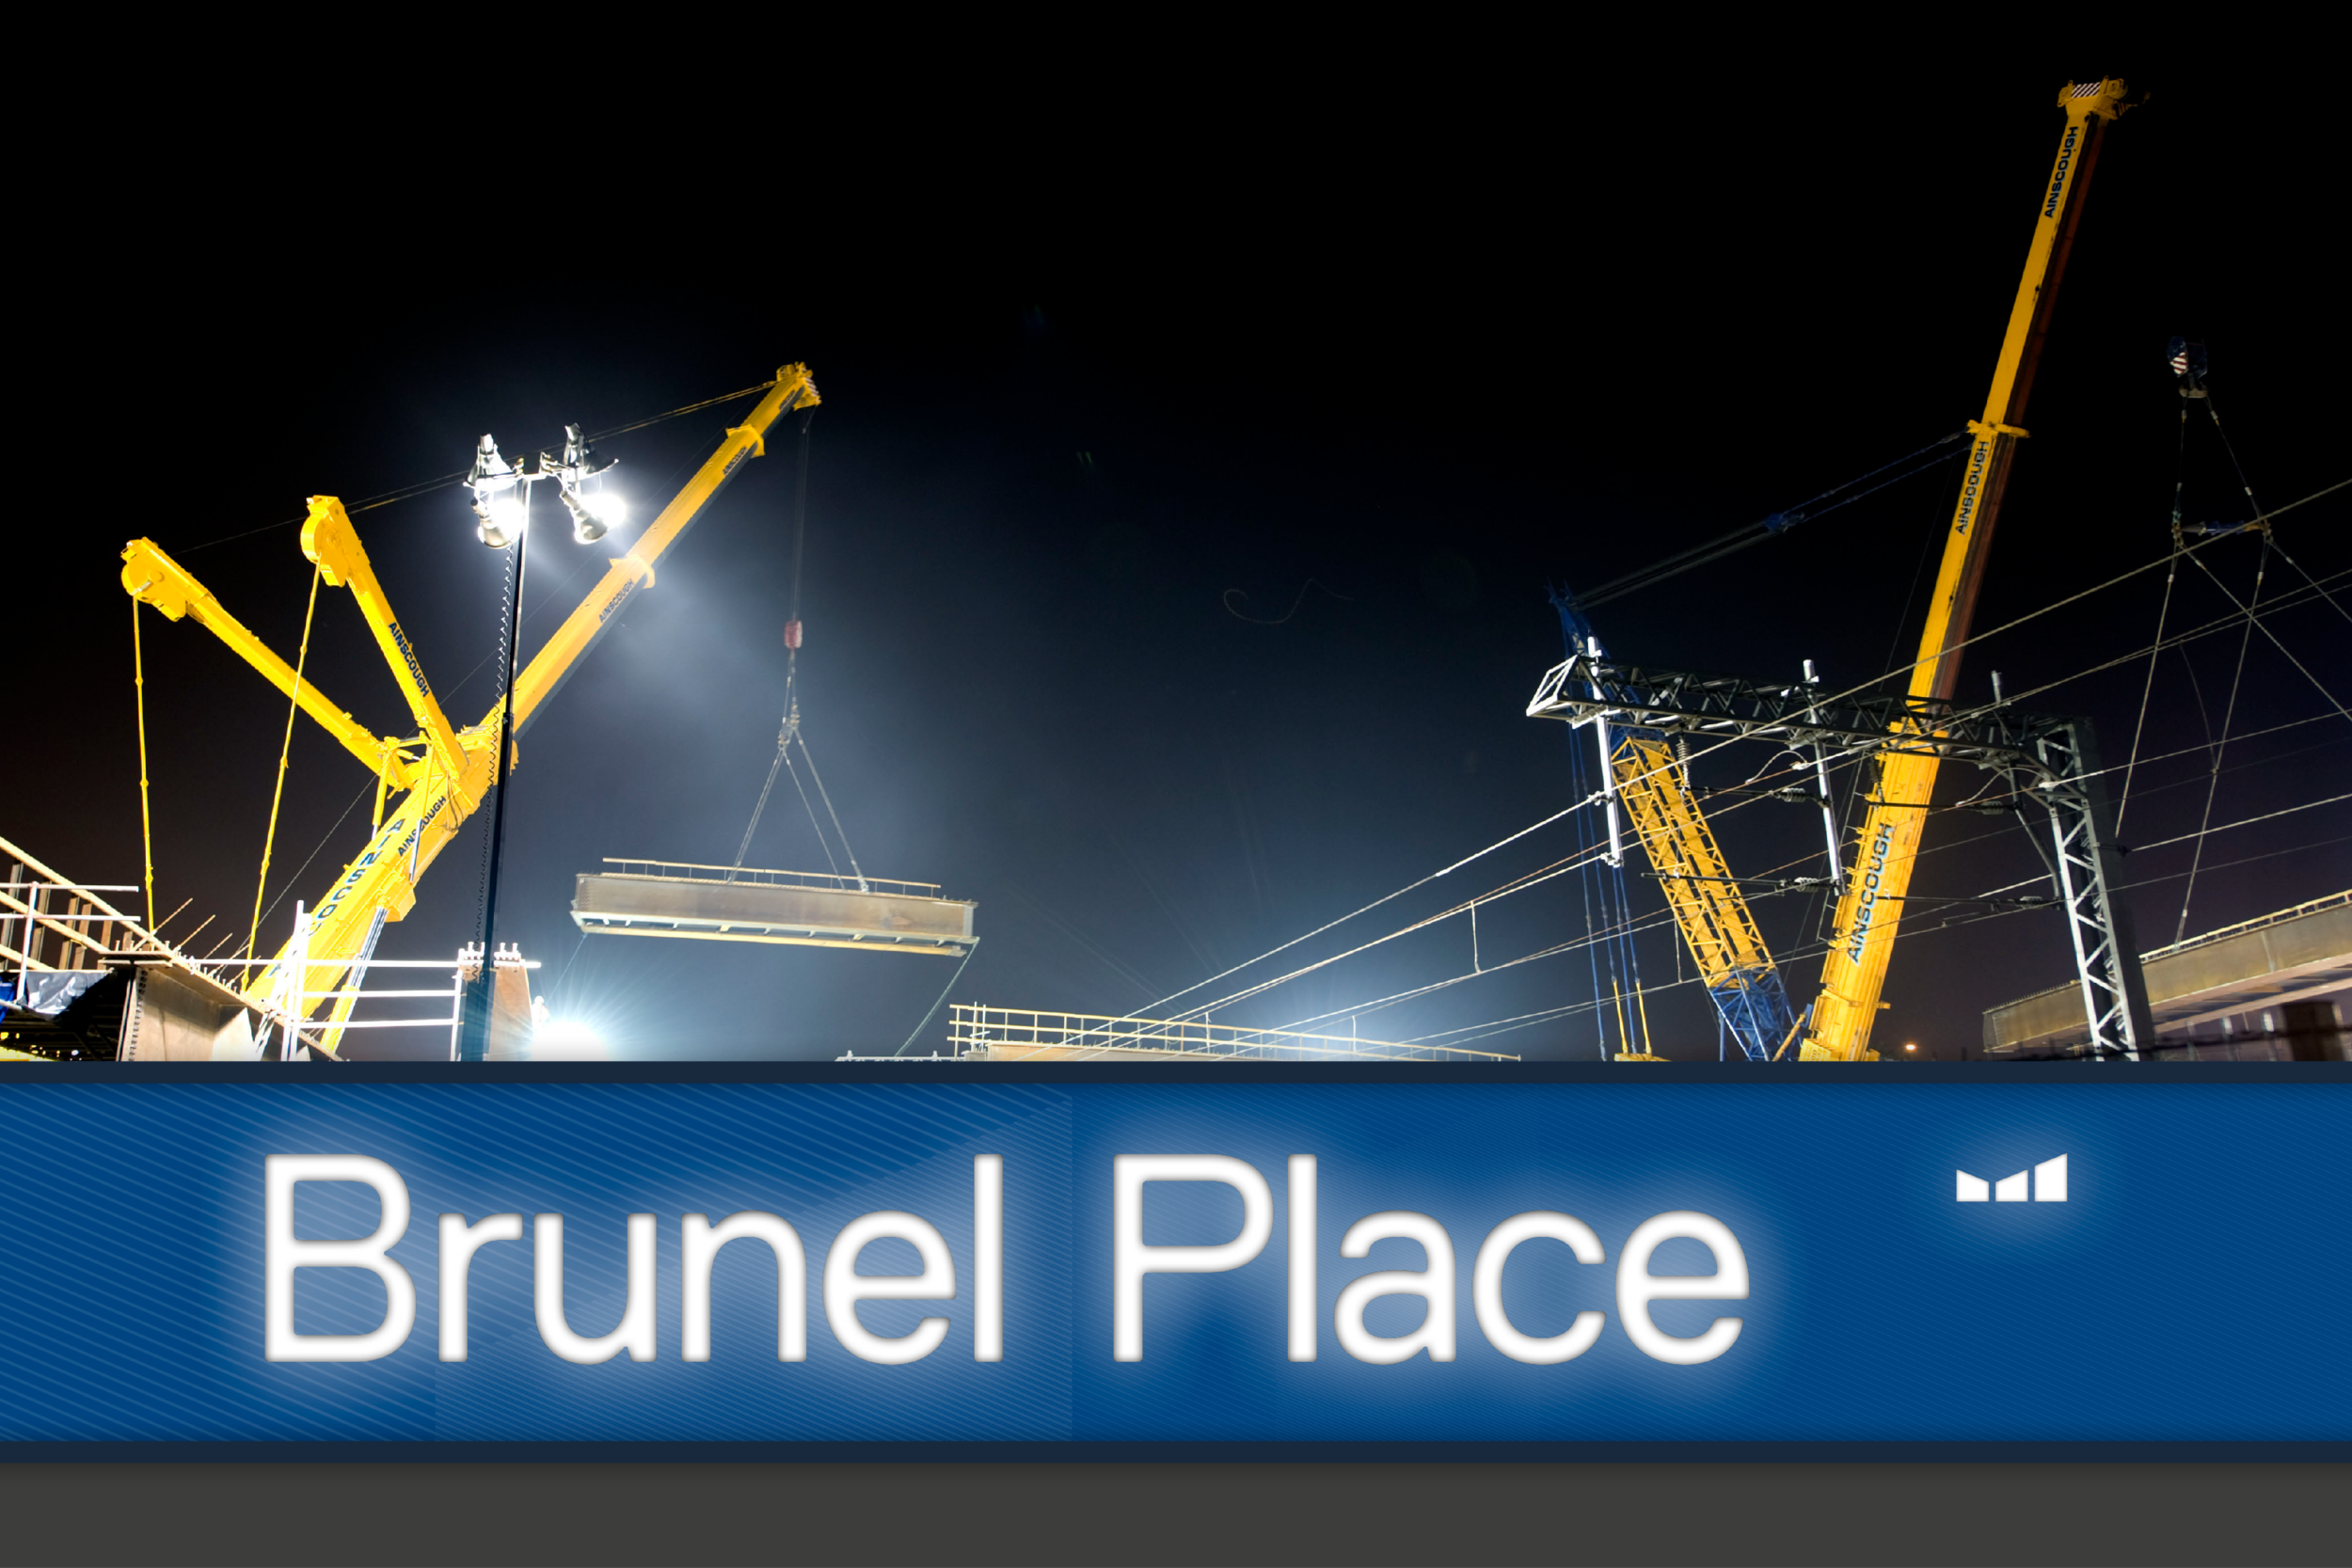 Brunel_Place_identity10.png